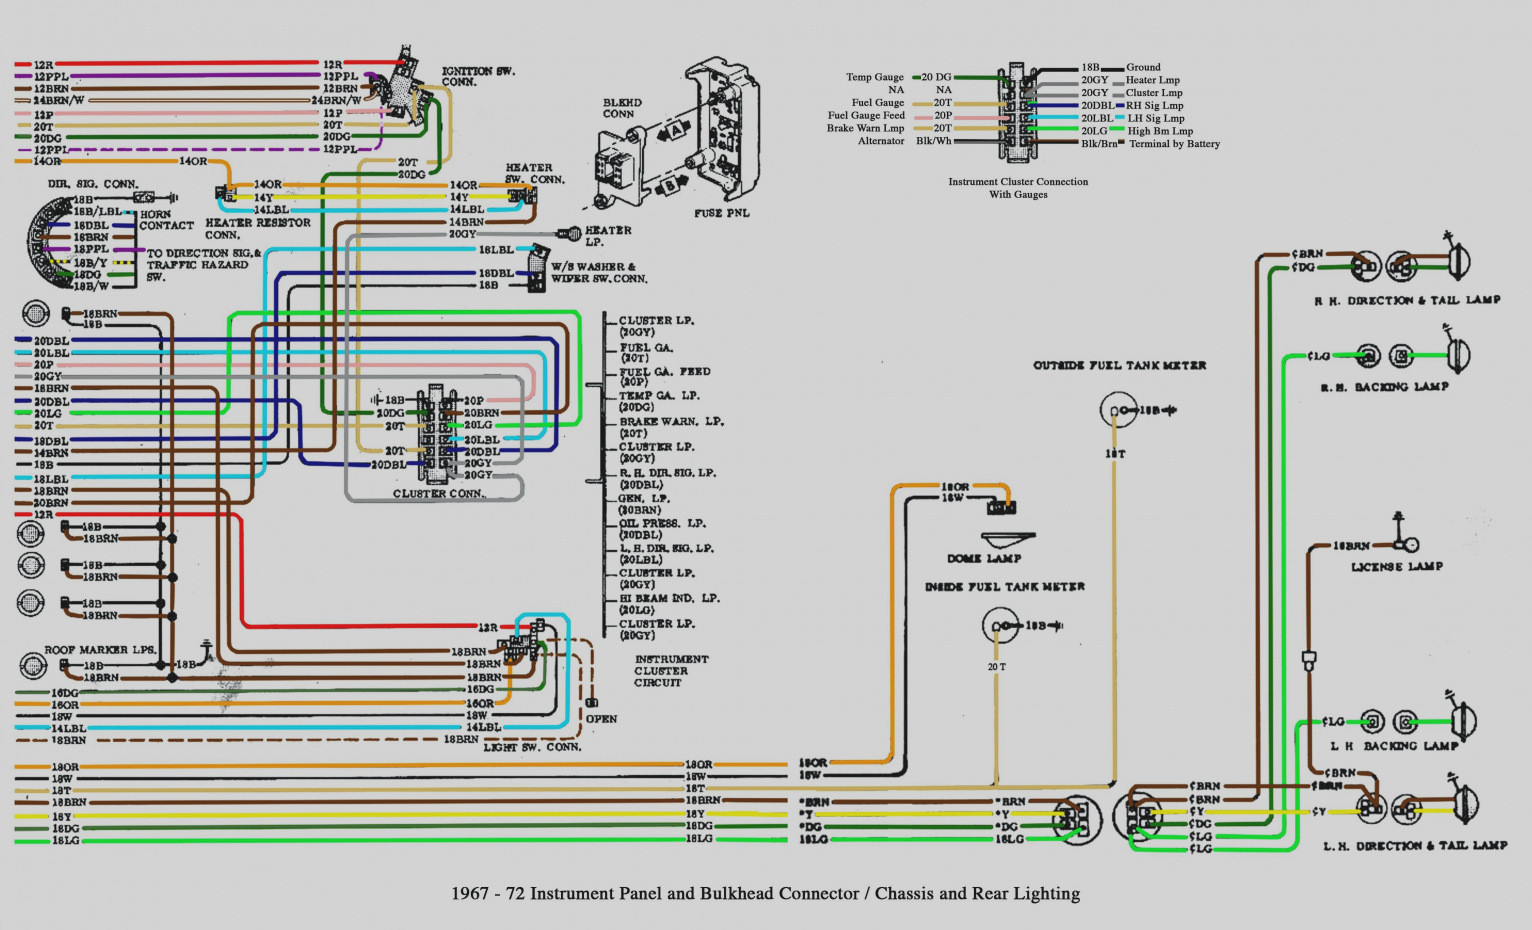 04 Gm Trailer Wiring Diagram | Wiring Library - 04 Dodge Trailer Wiring Diagram